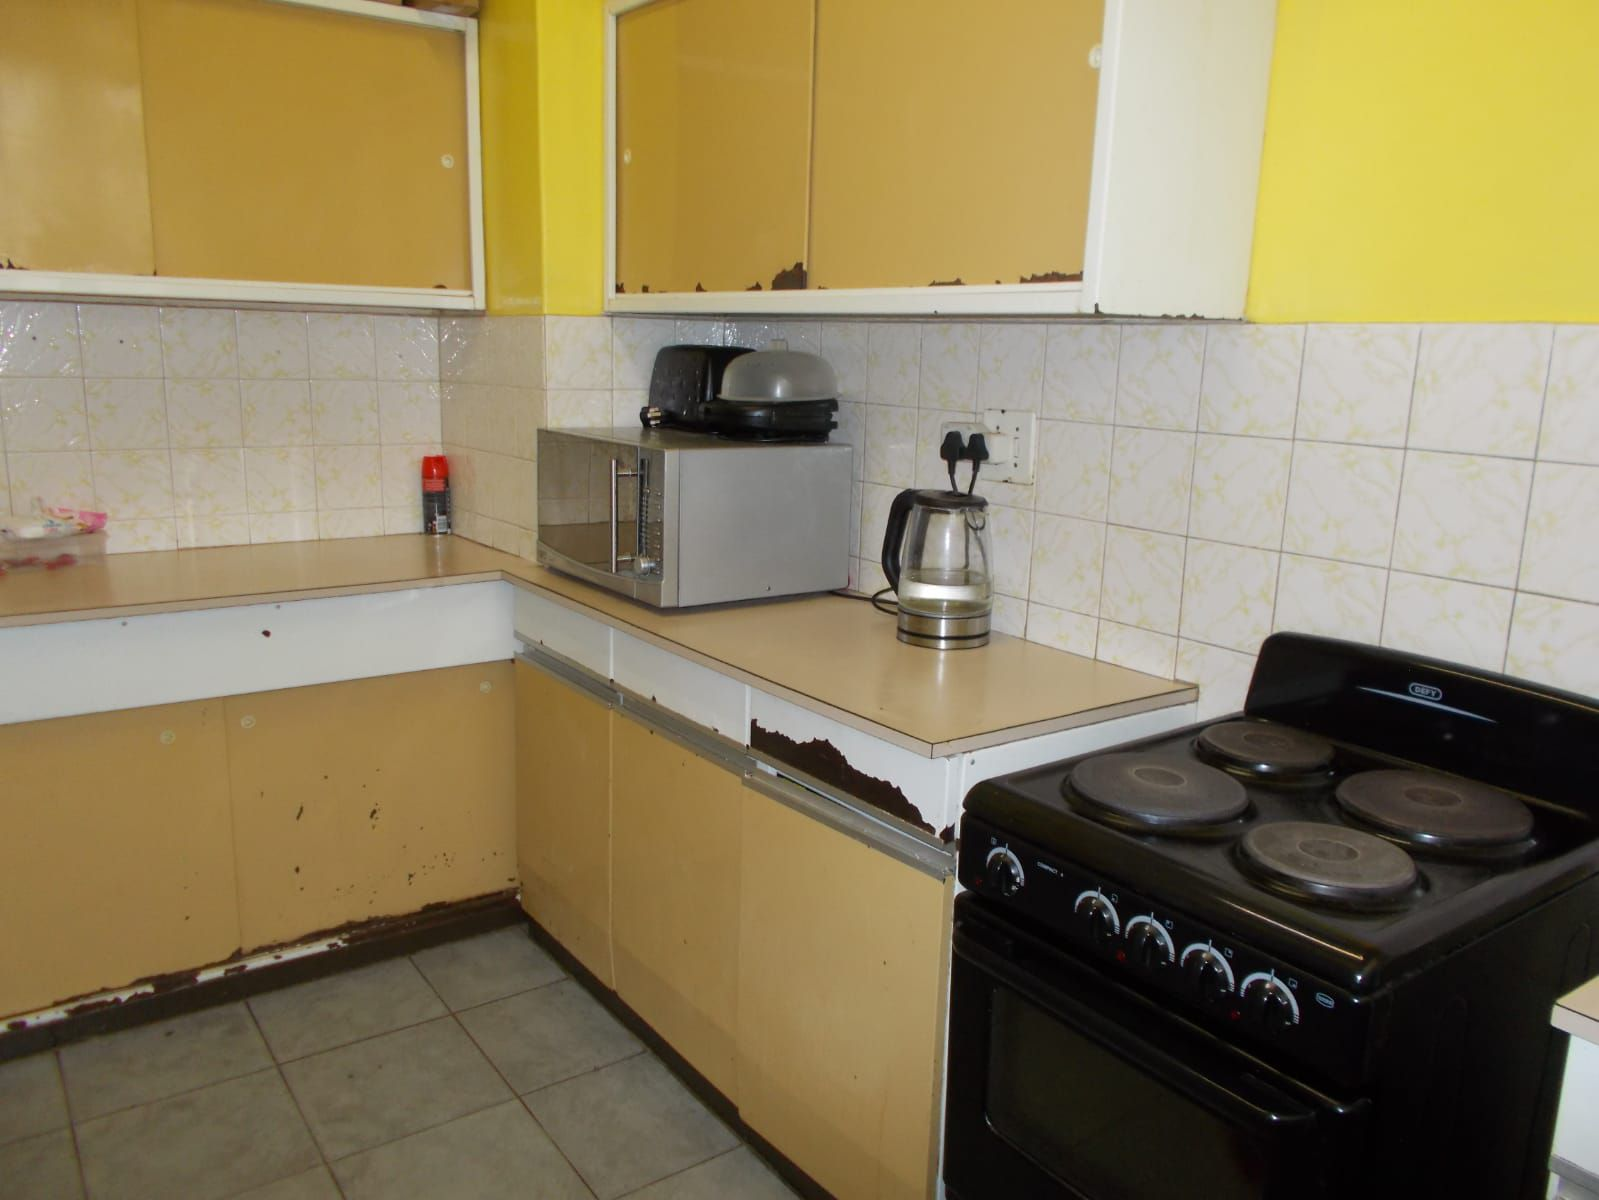 Apartment in Hillbrow - WhatsApp Image 2021-01-12 at 13.03.58 (1).jpeg